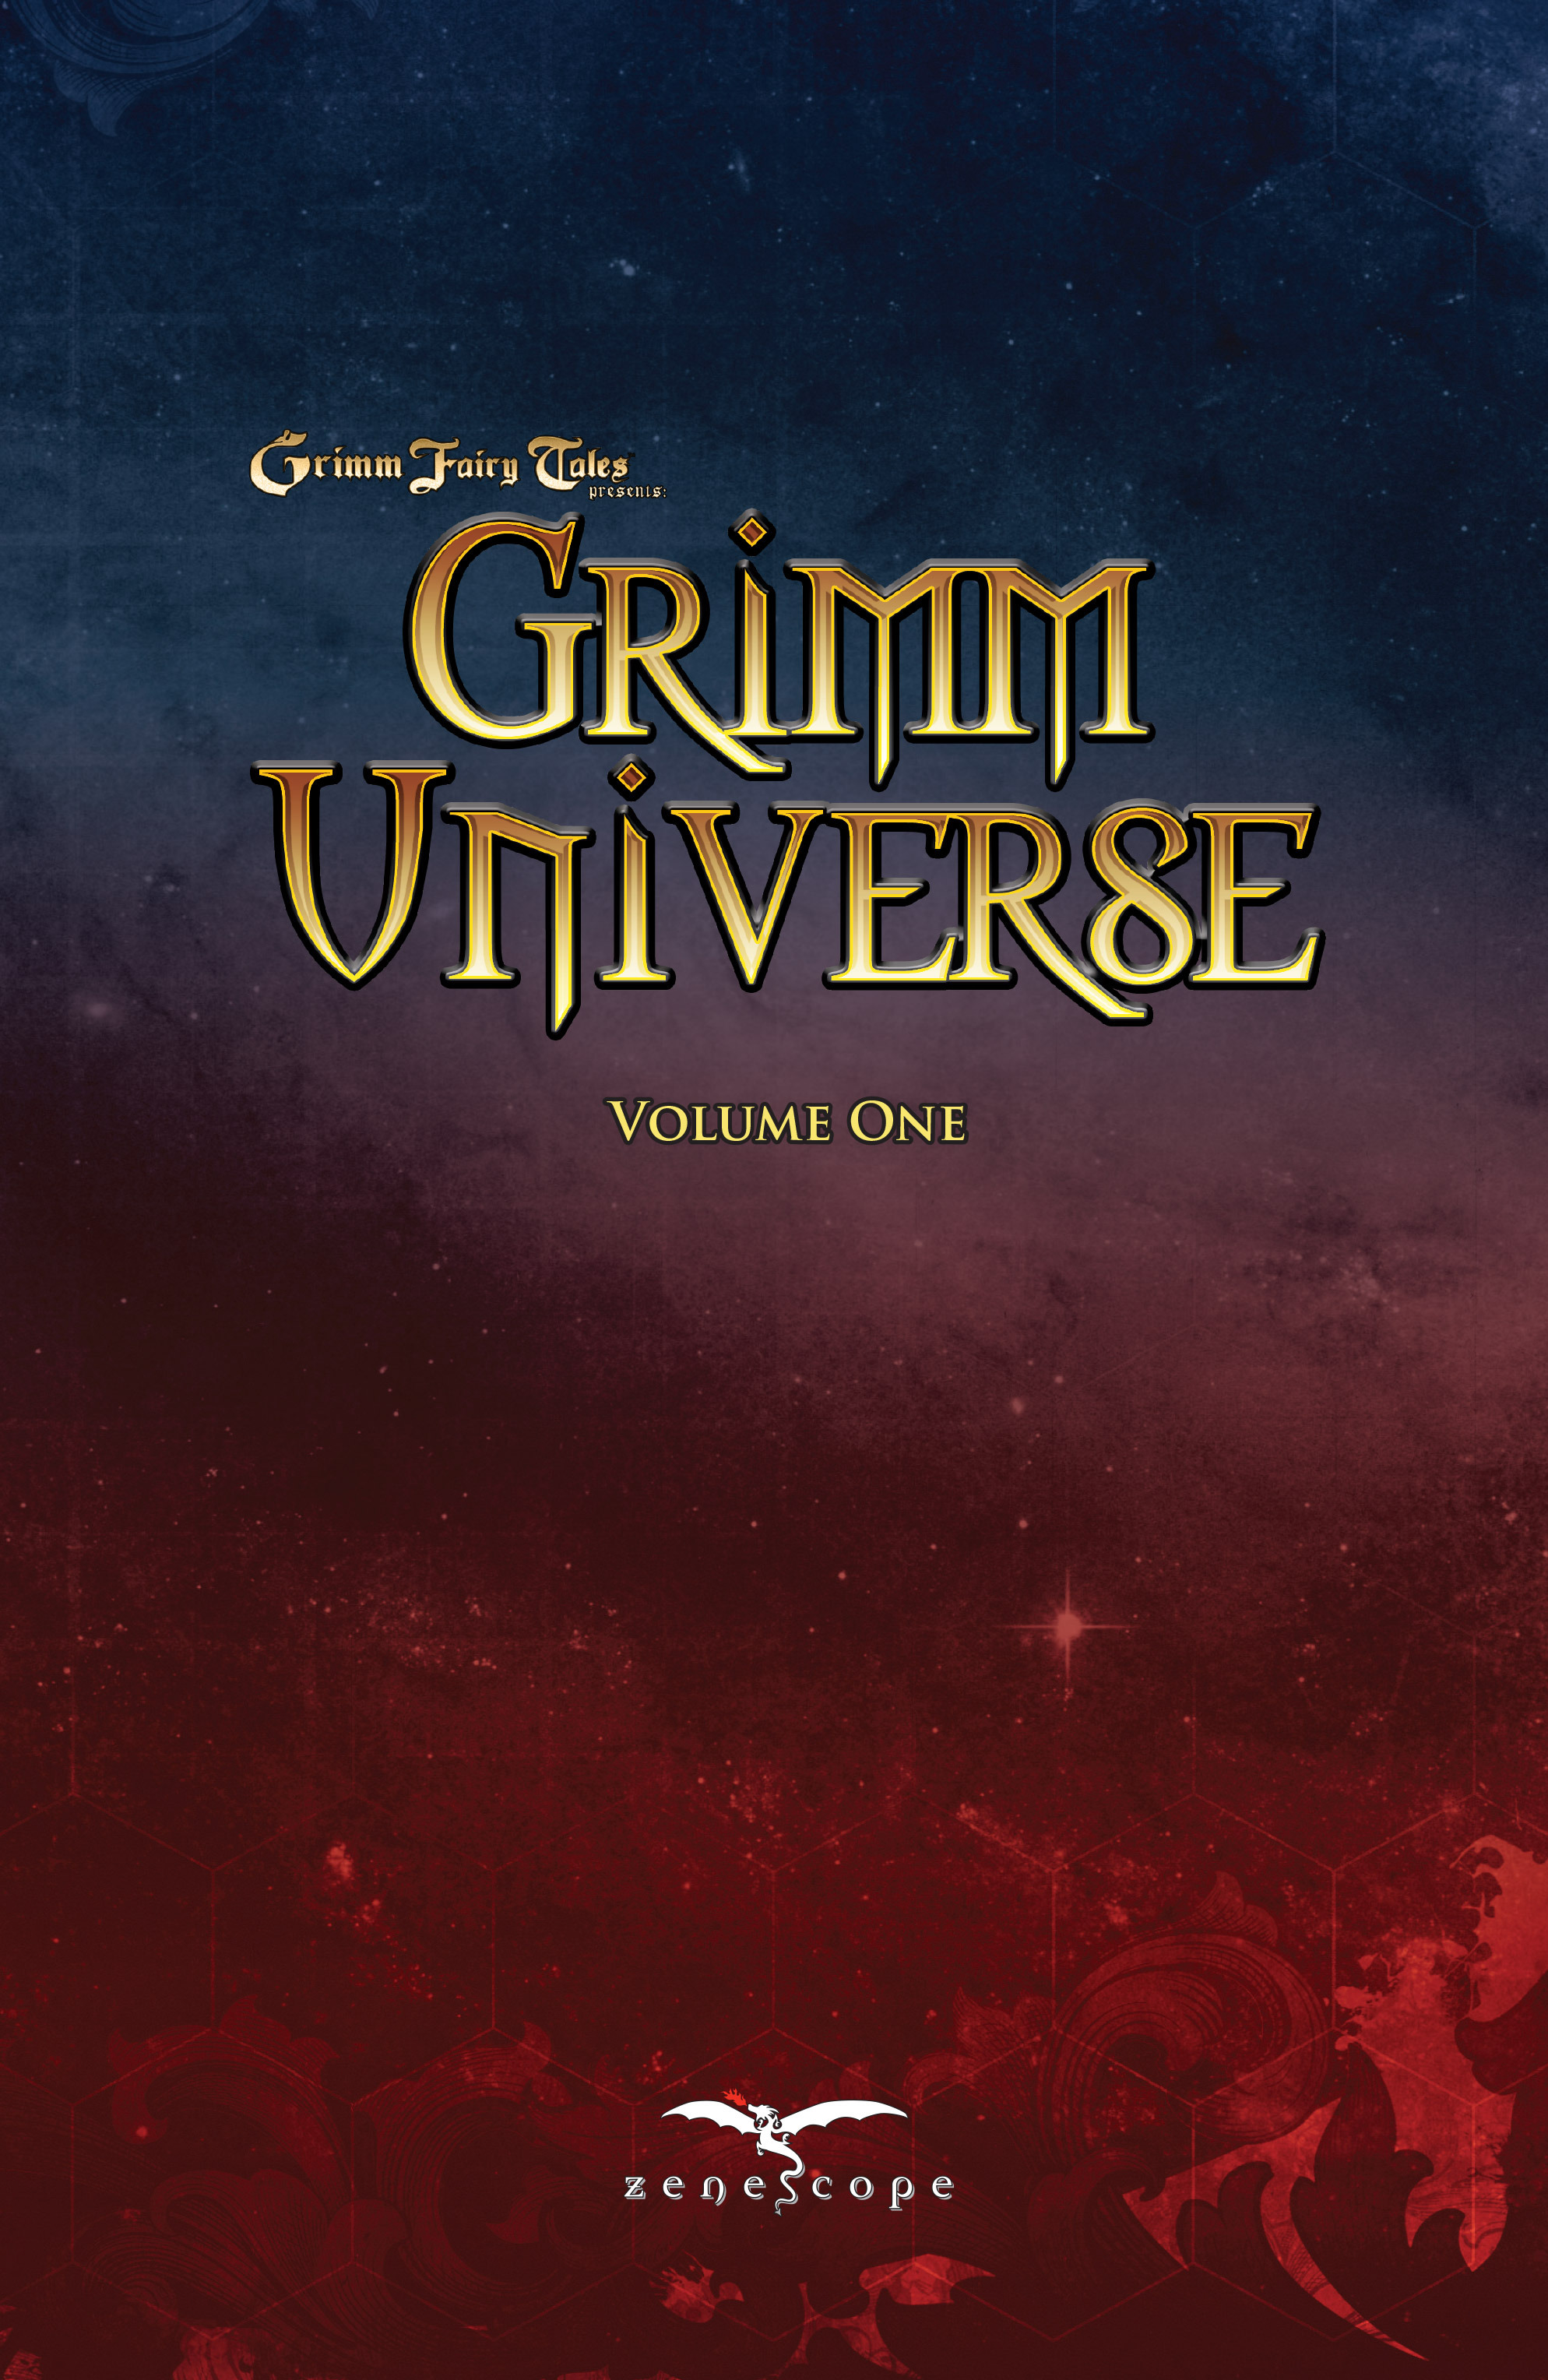 Read online Grimm Fairy Tales presents Grimm Universe comic -  Issue # TPB - 2